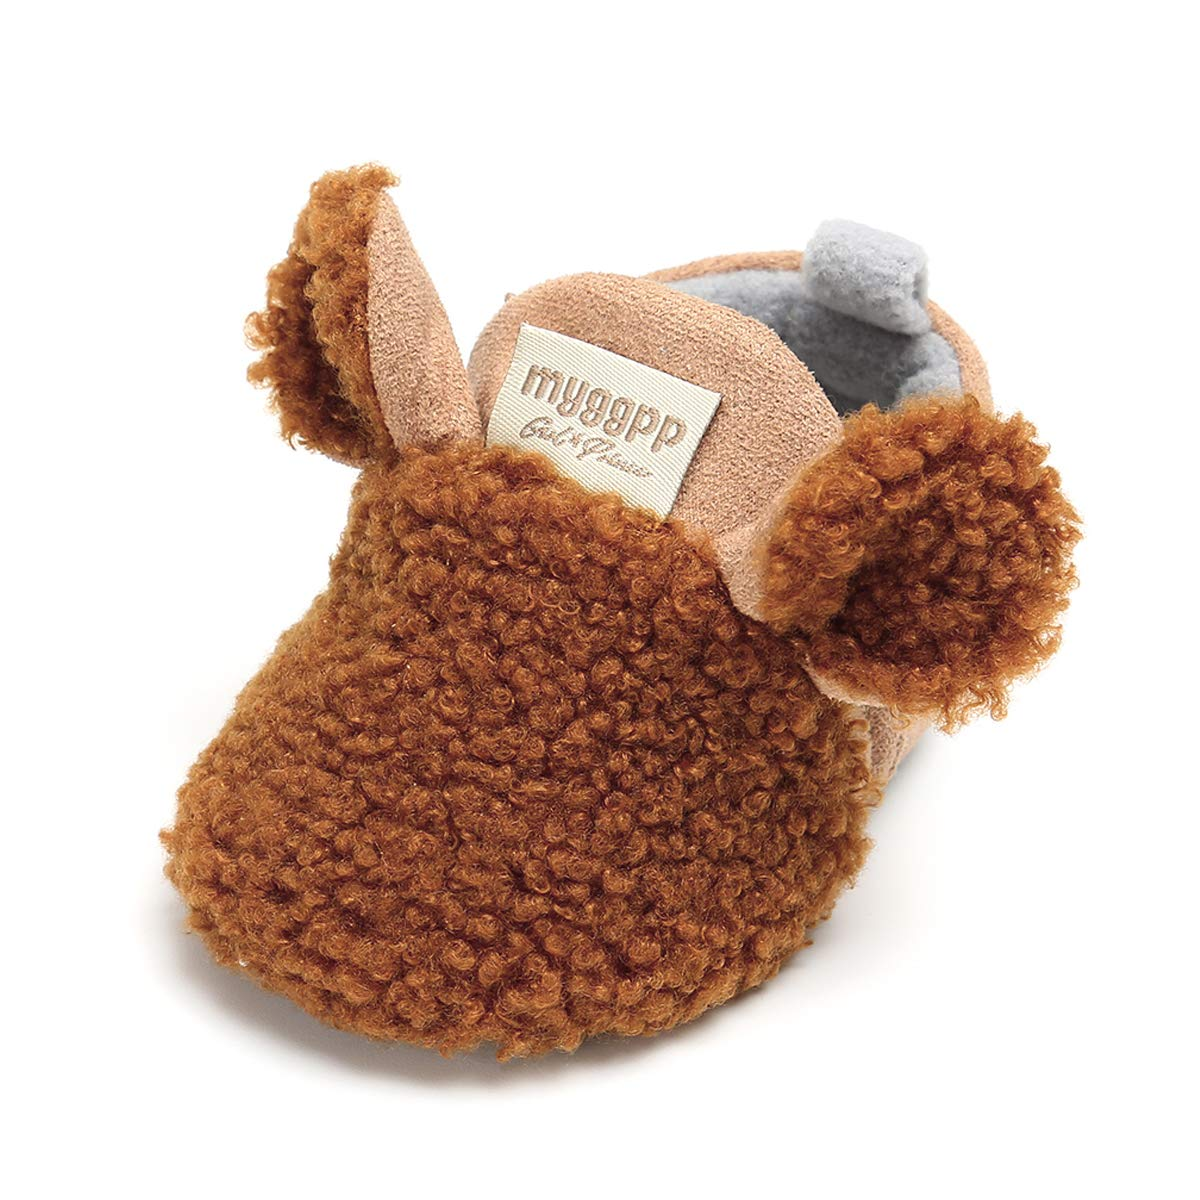 QGAKAGO Baby Girls Boys Plush Fleece Soft Sole Loafer Shoes Warm Shoes(0-6 Months, Brown)